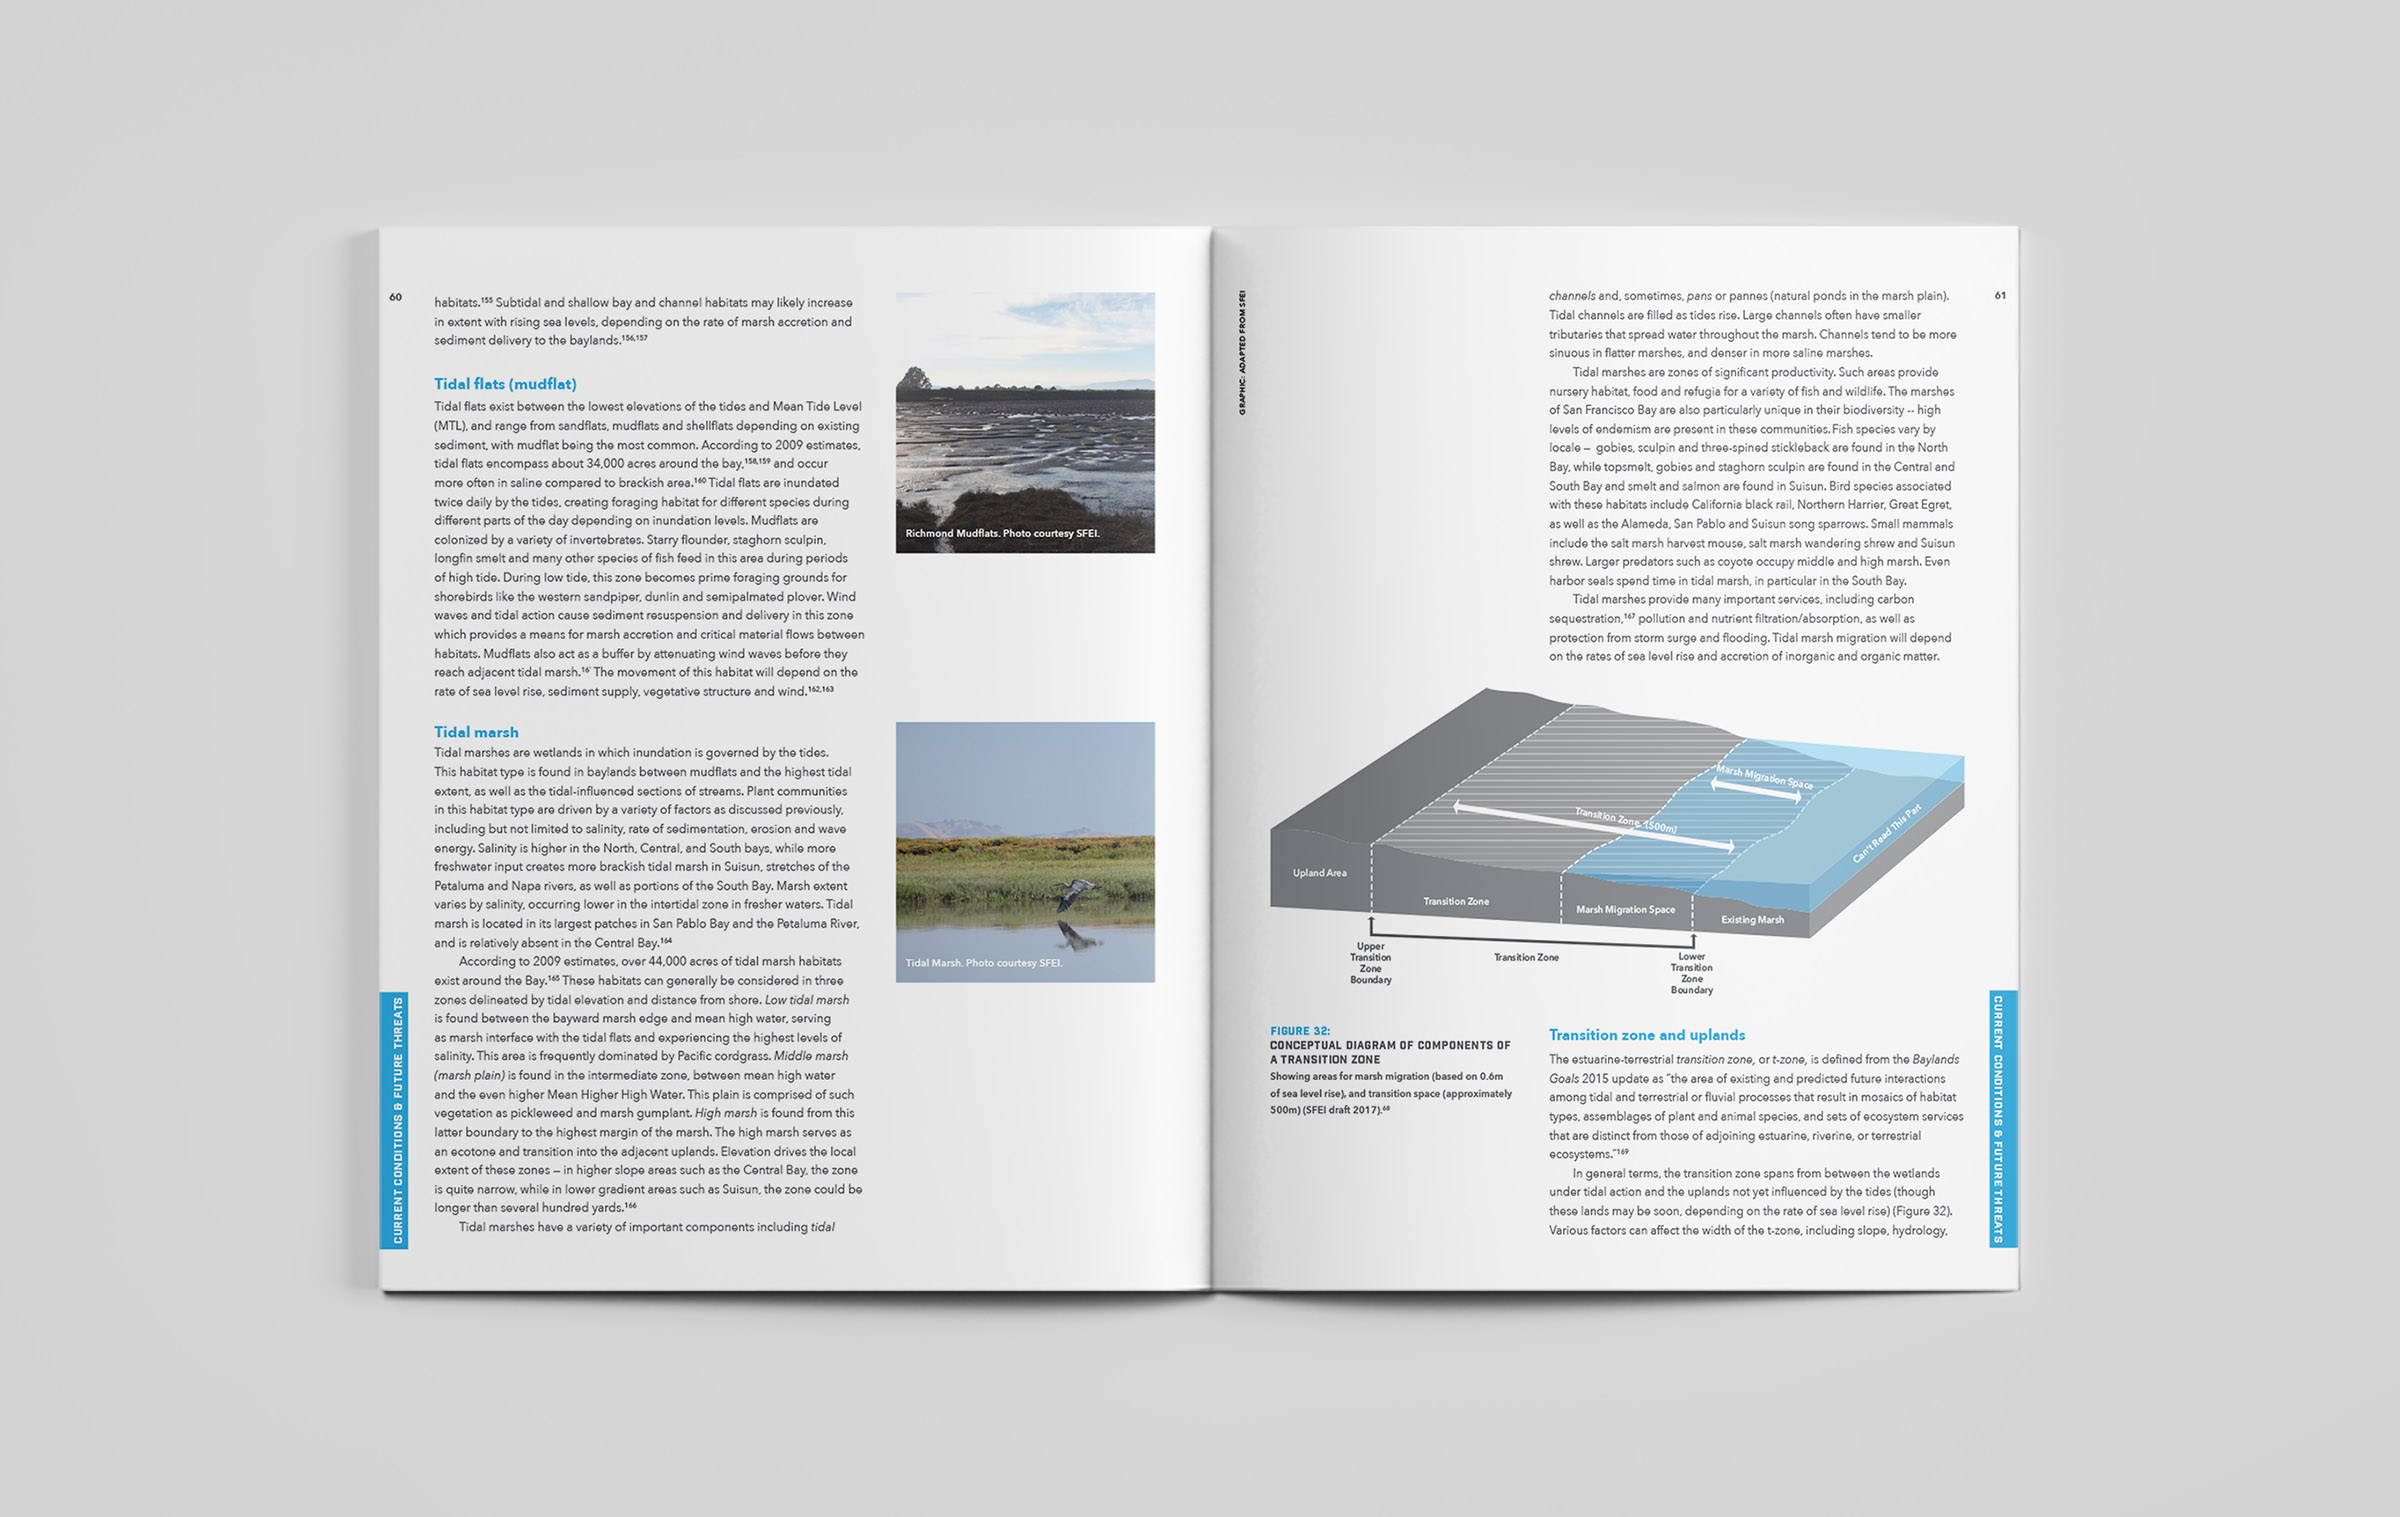 resilient-by-design-briefing-book-spread-3